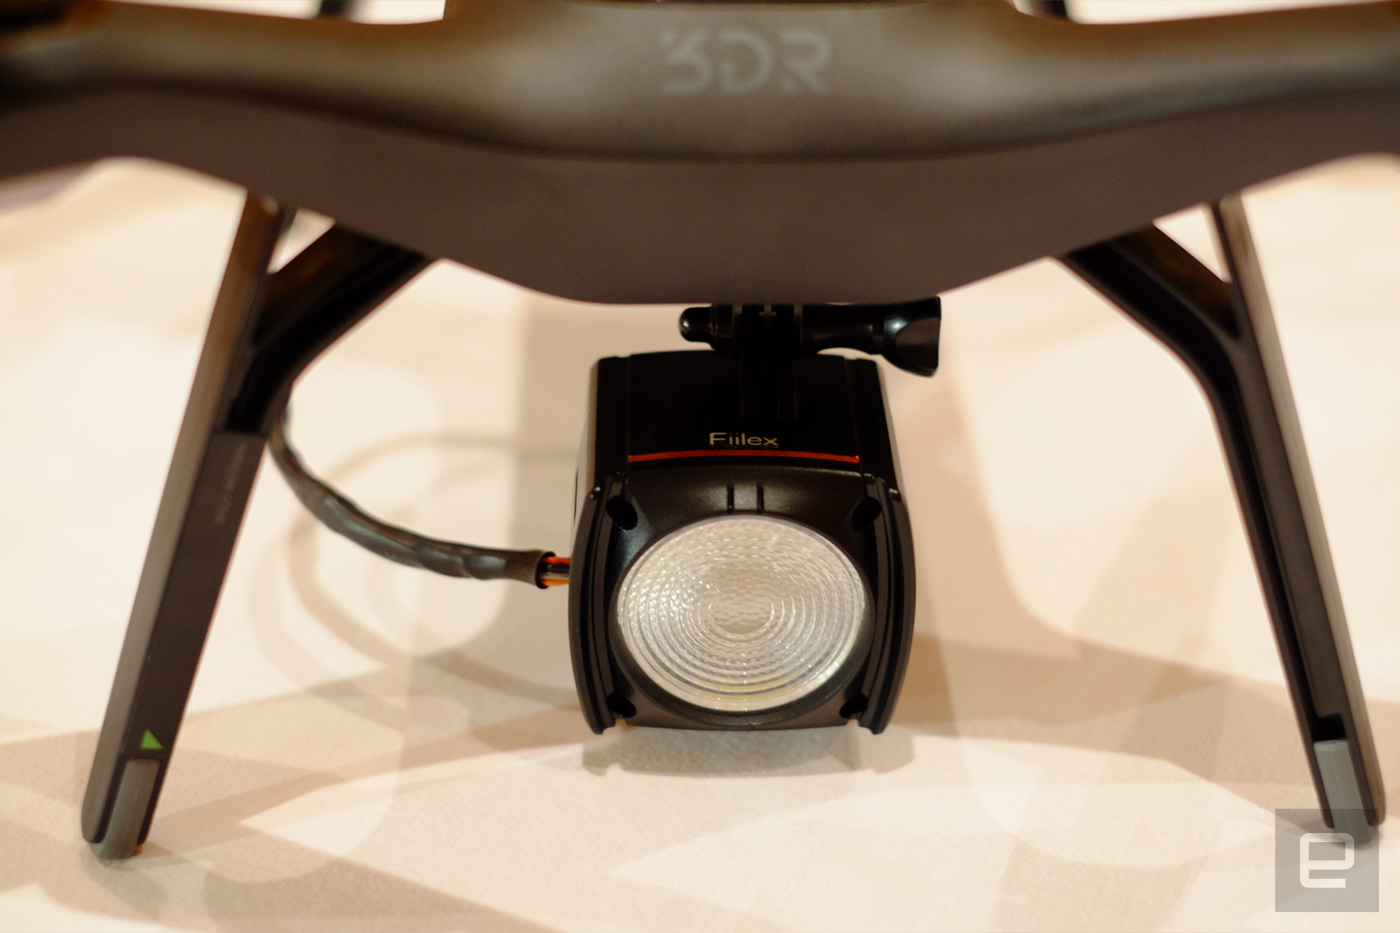 3DR's Made for Solo program does 360-degree video on a budget